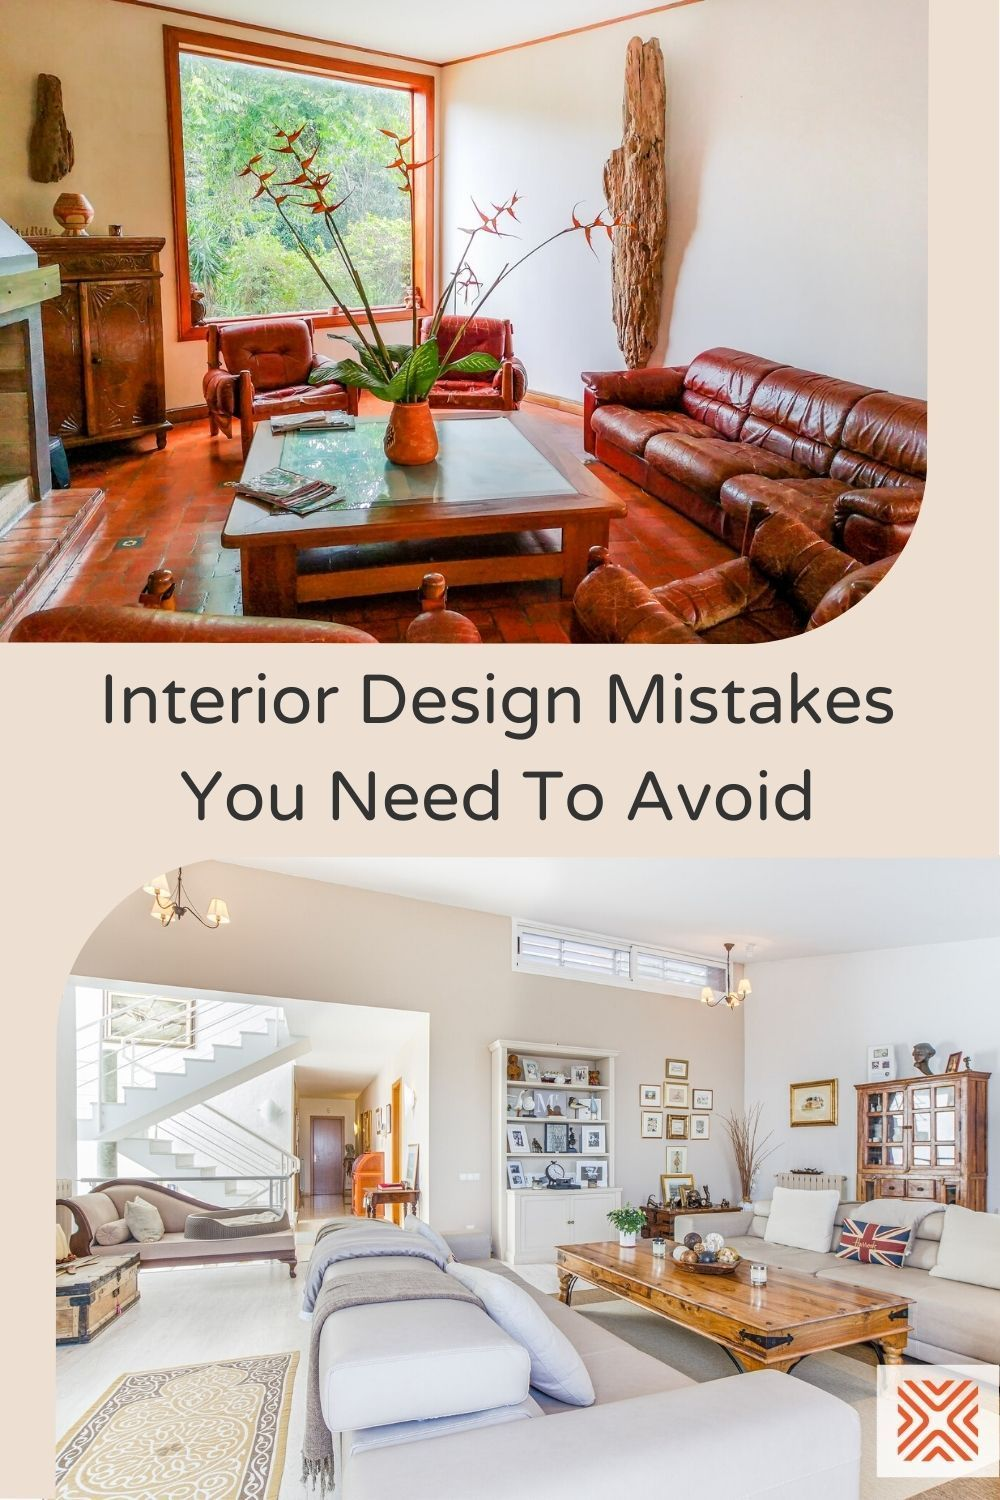 Having trouble decorating your house? Decorate your home like a true interior designer by following these home decor tricks and avoid these common interior design mistakes.